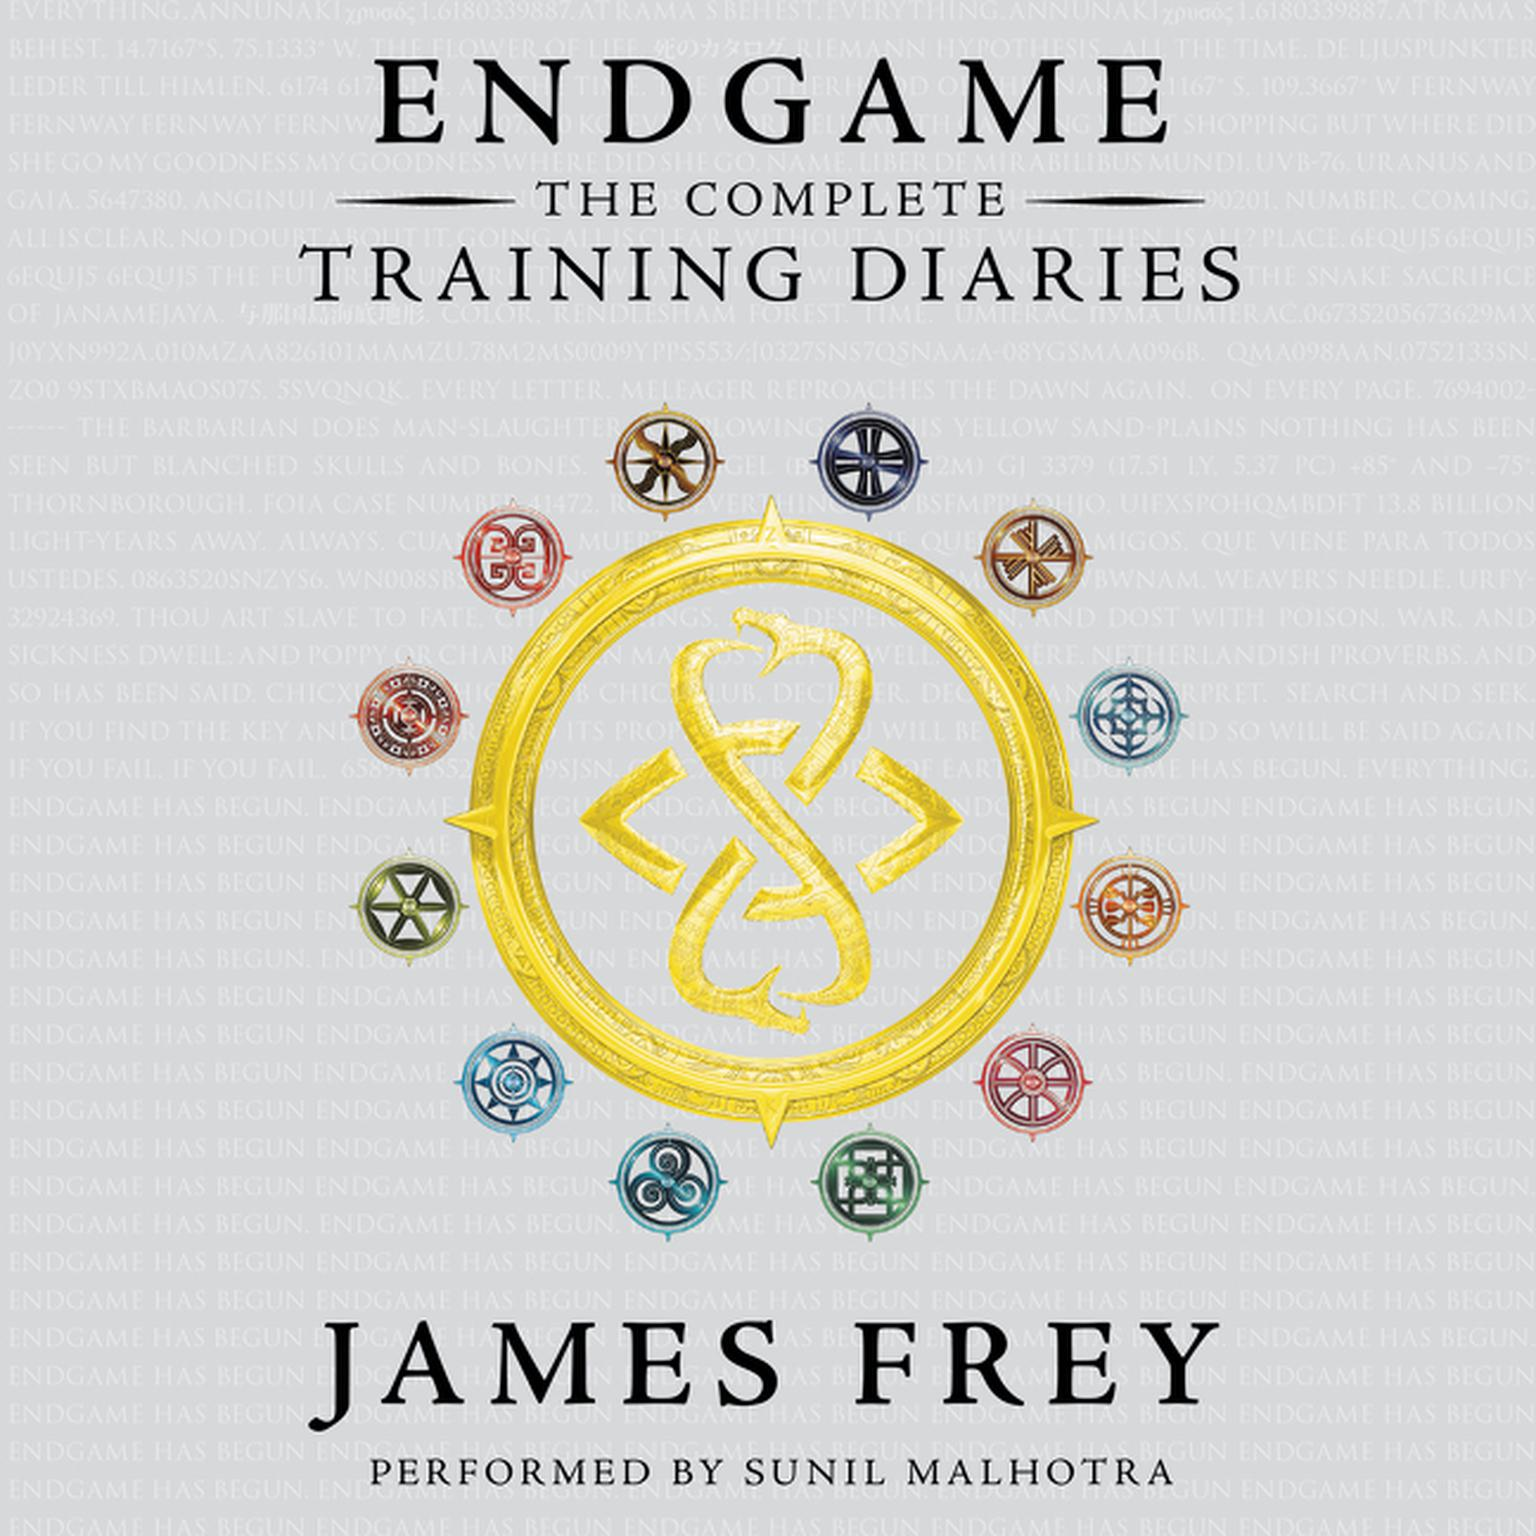 Printable Endgame: The Complete Training Diaries: Volumes 1, 2, and 3 Audiobook Cover Art